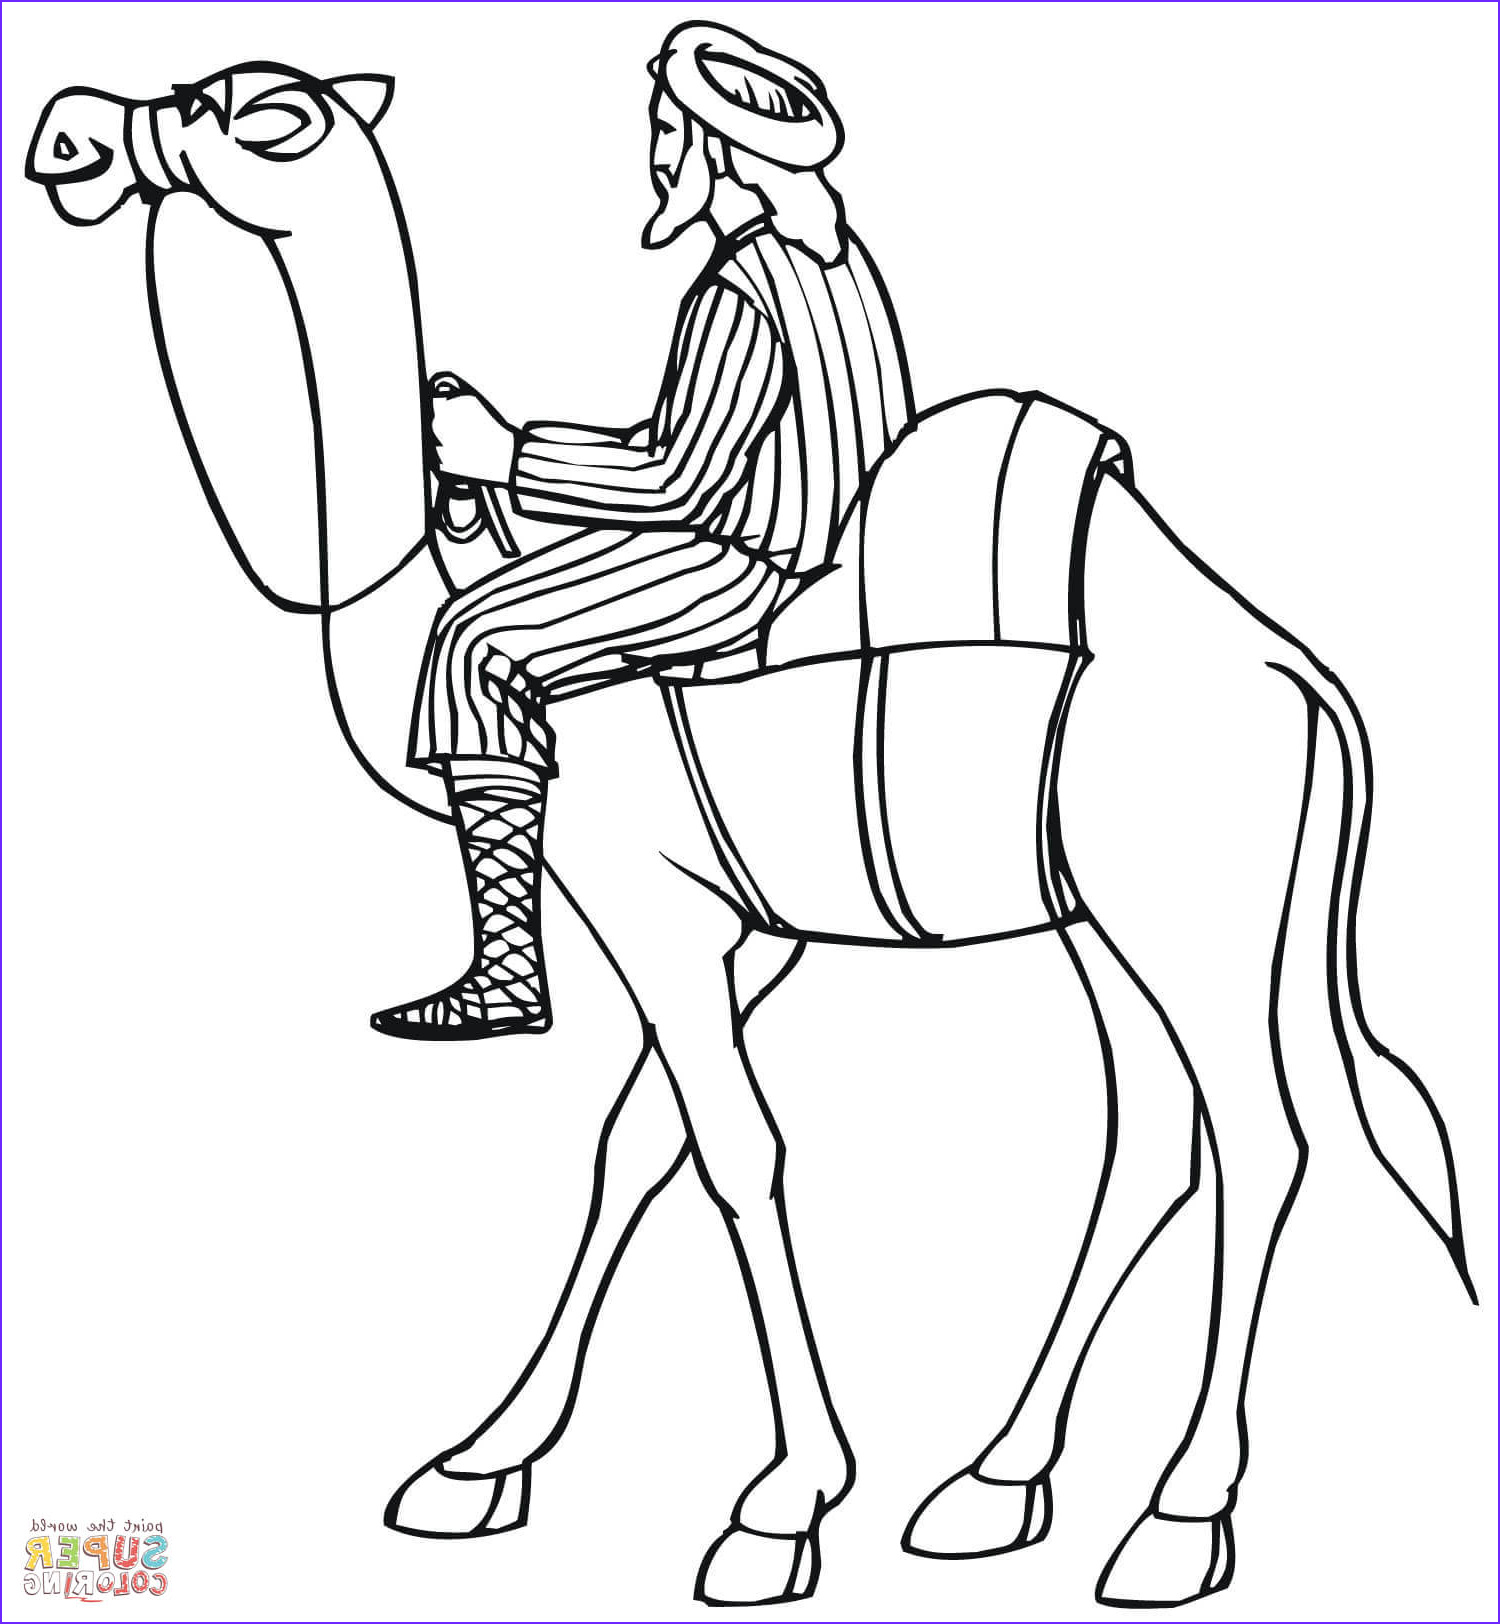 9 11 Coloring Pages New Stock 9 11 Coloring Pages